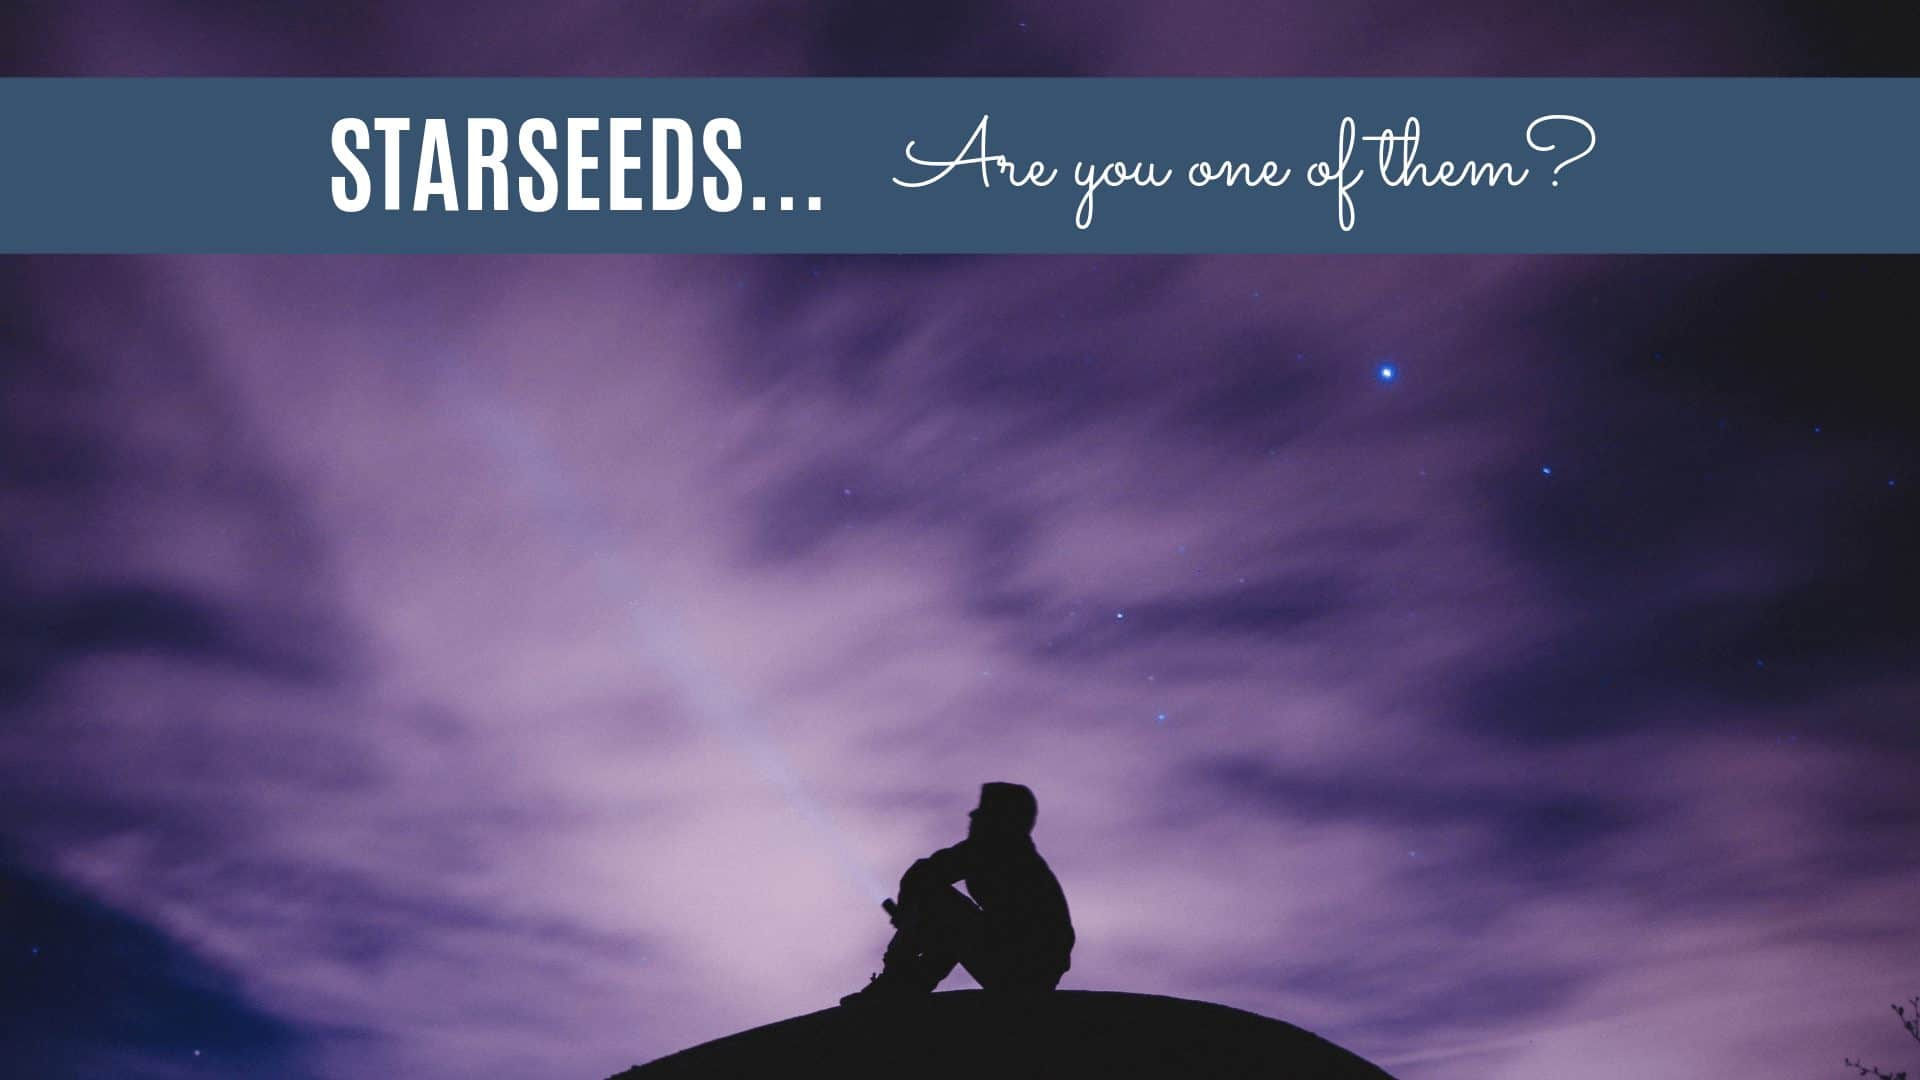 Starseeds and their characteristics - Inspiration Divination